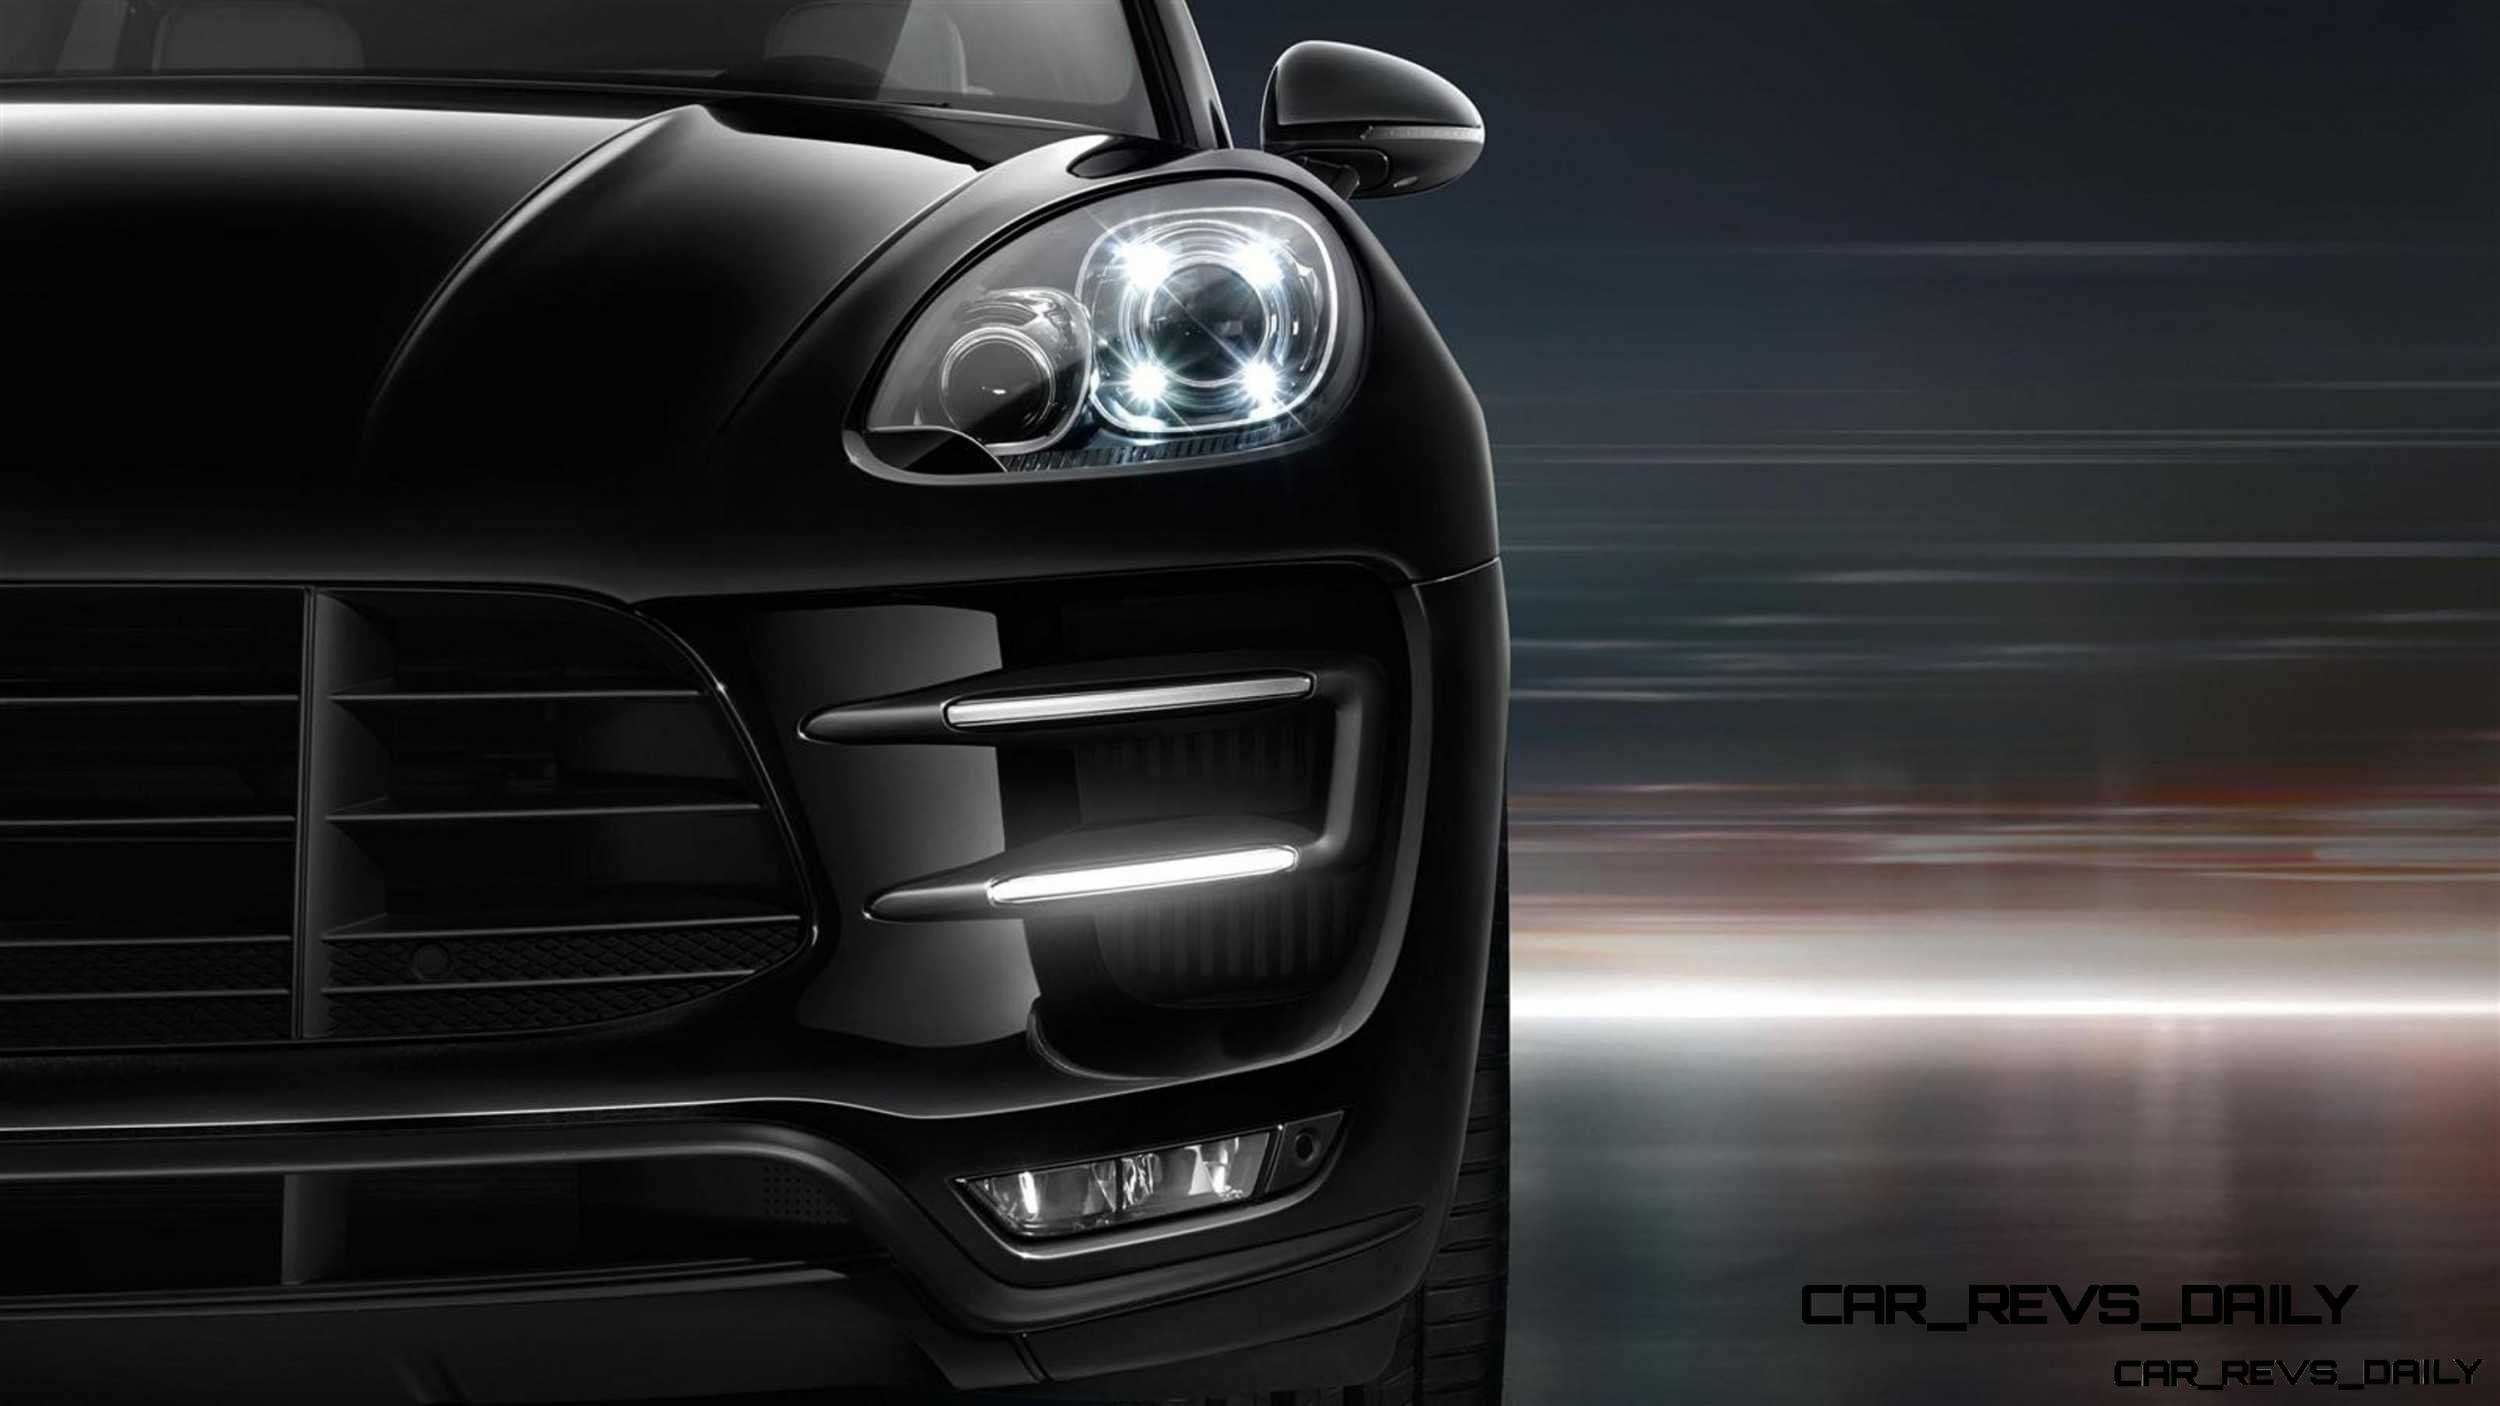 2015 Porsche Macan - Latest Images - CarRevsDaily.com 13